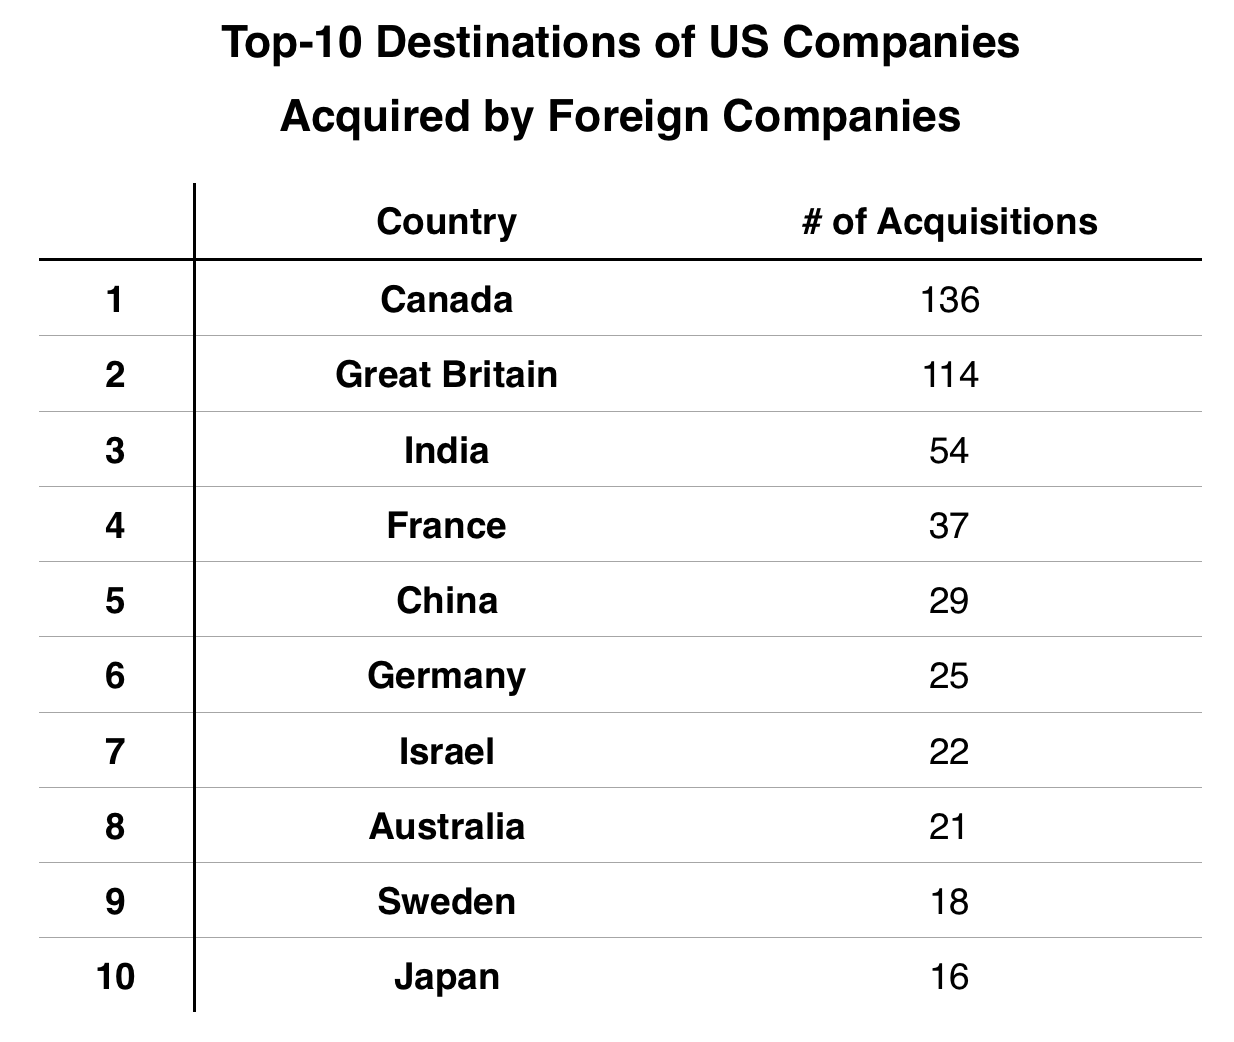 Rank of Countries By # of Acquisitions of US Companies